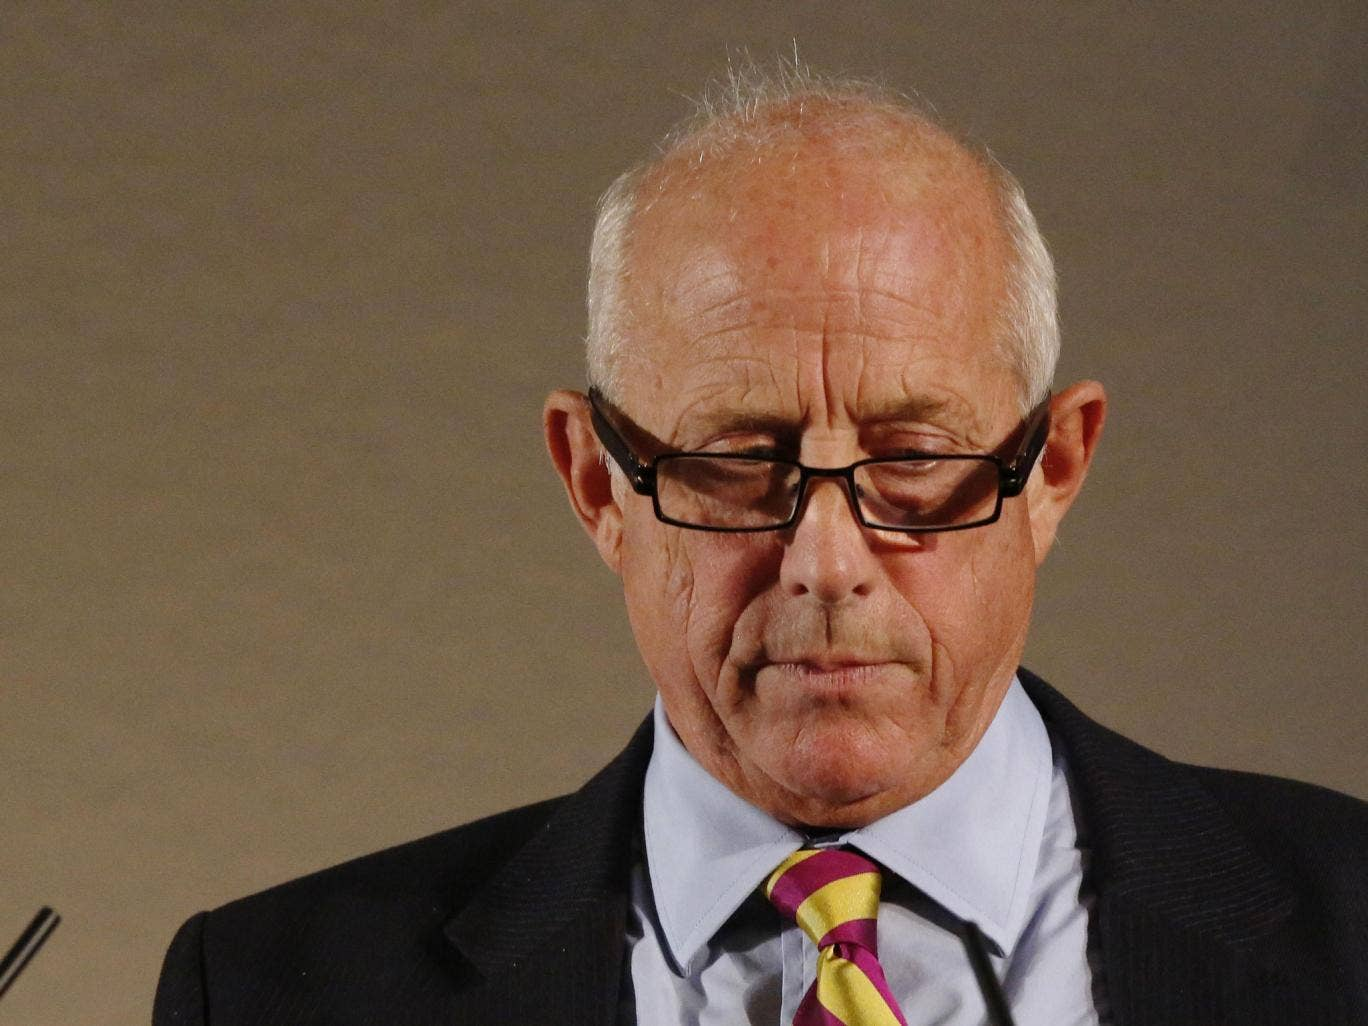 Godfrey Bloom lost the UK Independence Party whip after he jokingly described women as 'sluts'